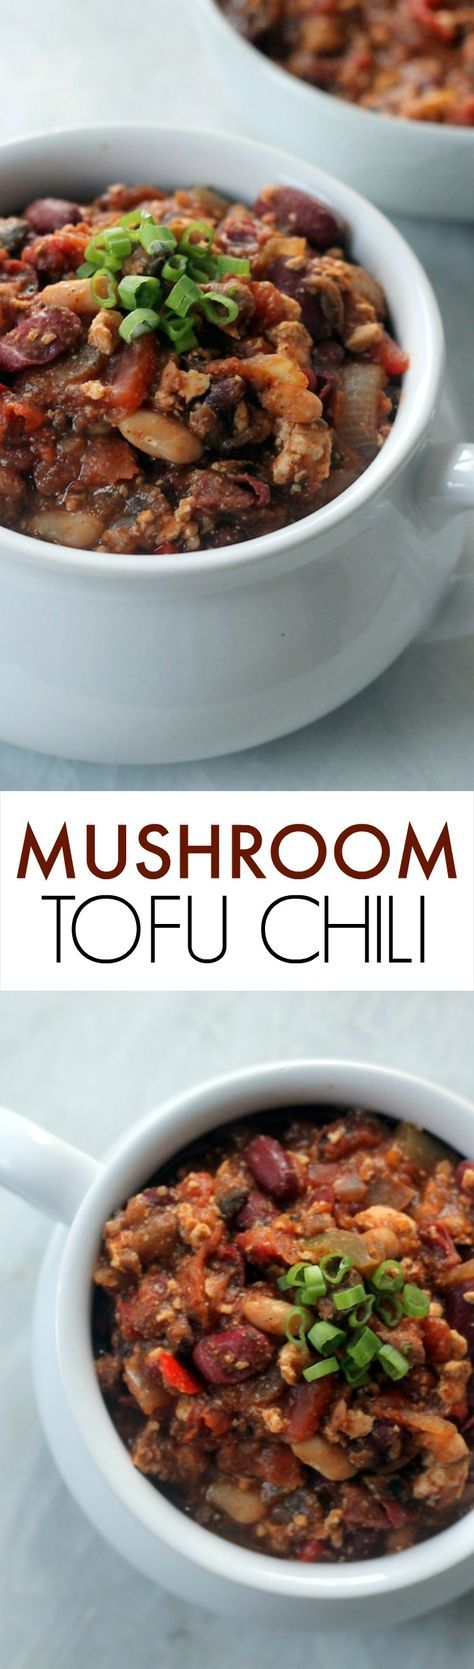 This Vegan Mushroom Tofu Chili is the perfect hearty meal for the whole family! Full of fiber, plant protein and veggies and naturally gluten-free.